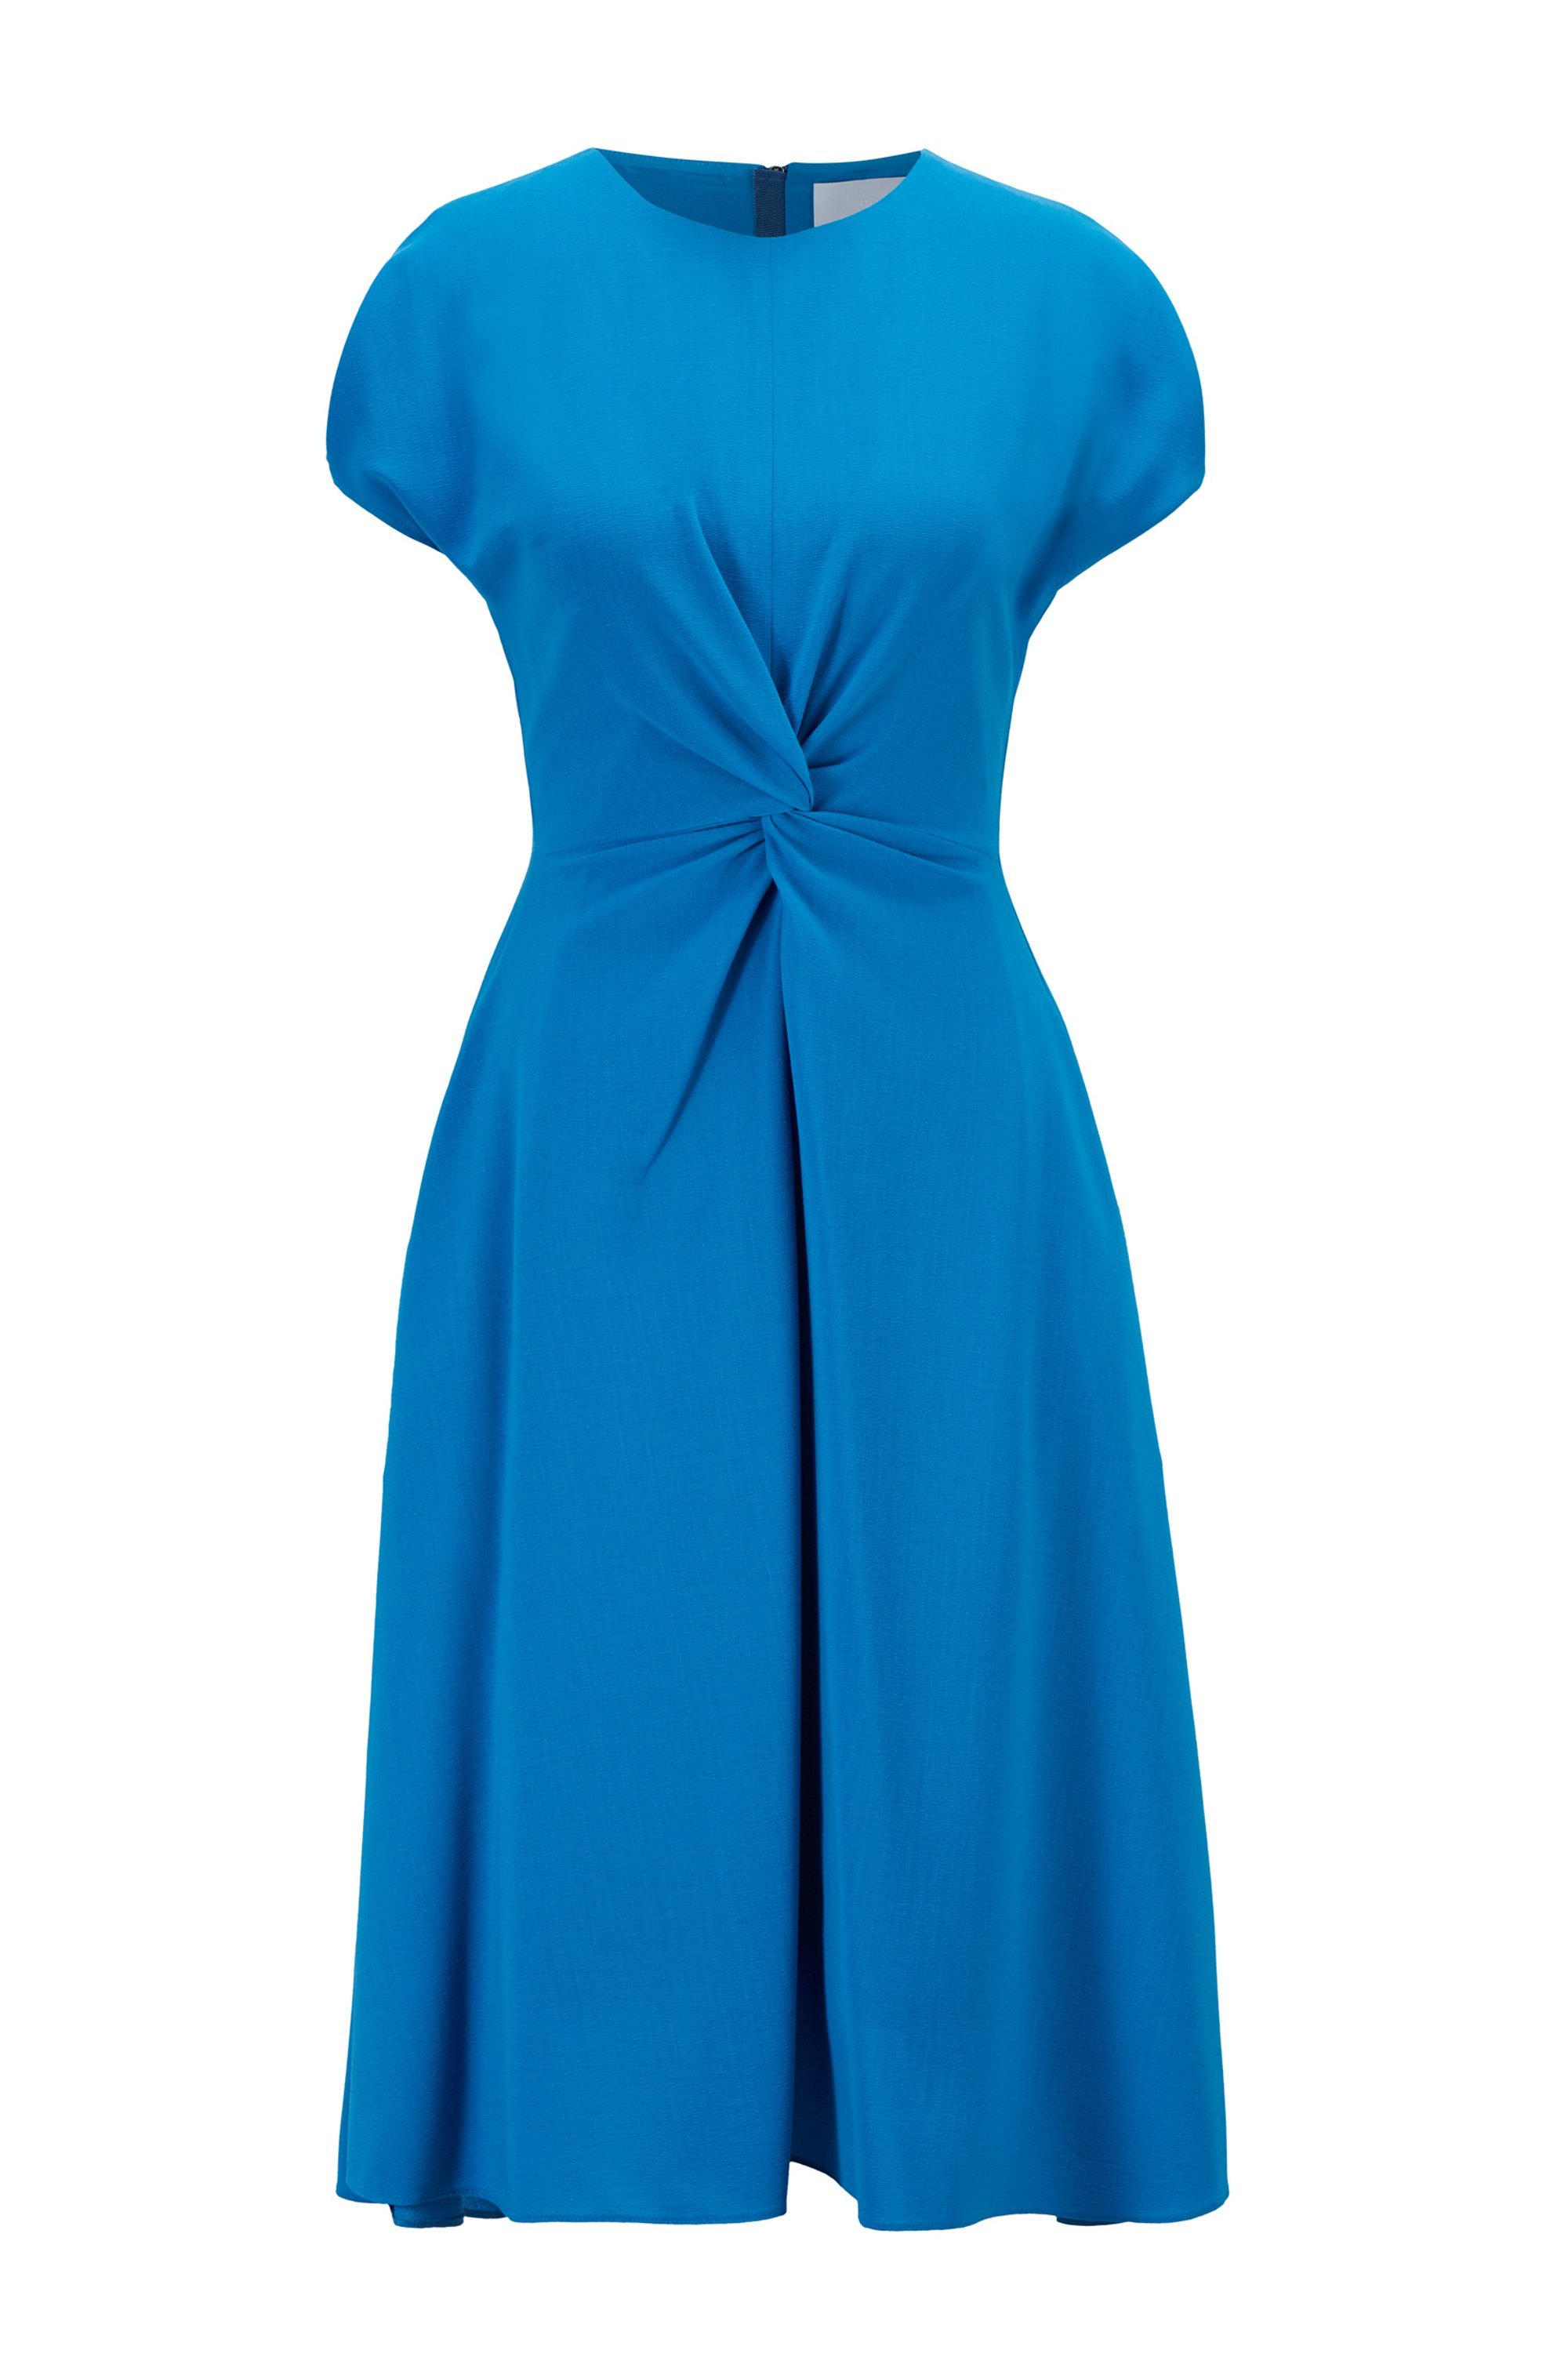 Short-sleeved wool-blend dress with knot detail, Blue